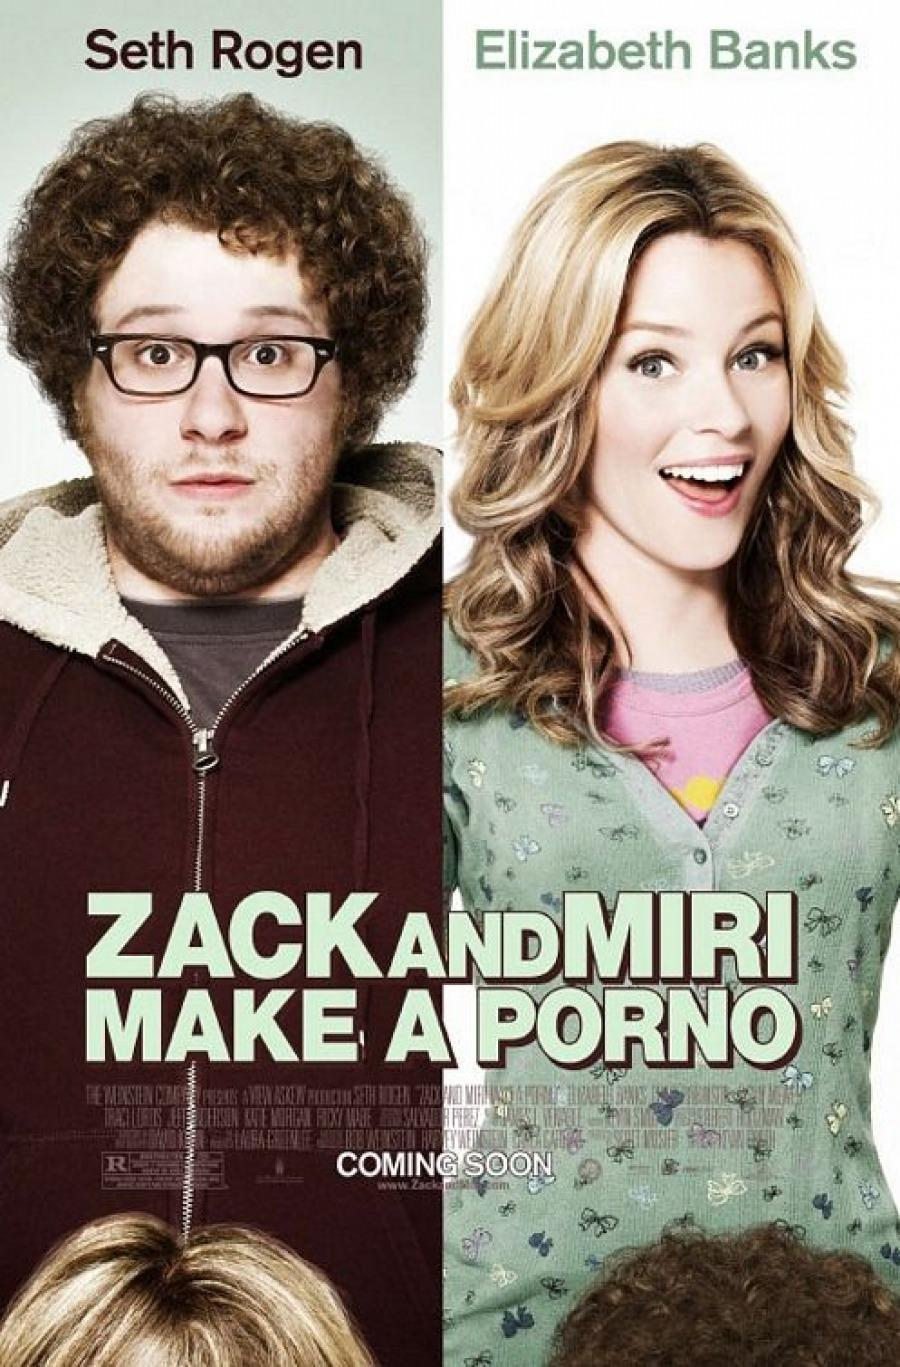 <p><b>Why it was banned:</b> Kevin Smith was outraged that the censors deemed this cheeky poster for his DIY porn comedy unsuitable for public consumption – the head placement is a little risque, but Seth Rogen and Elizabeth Banks are fully clothed and are wearing such goofy expressions, you can't help but love it.</p>